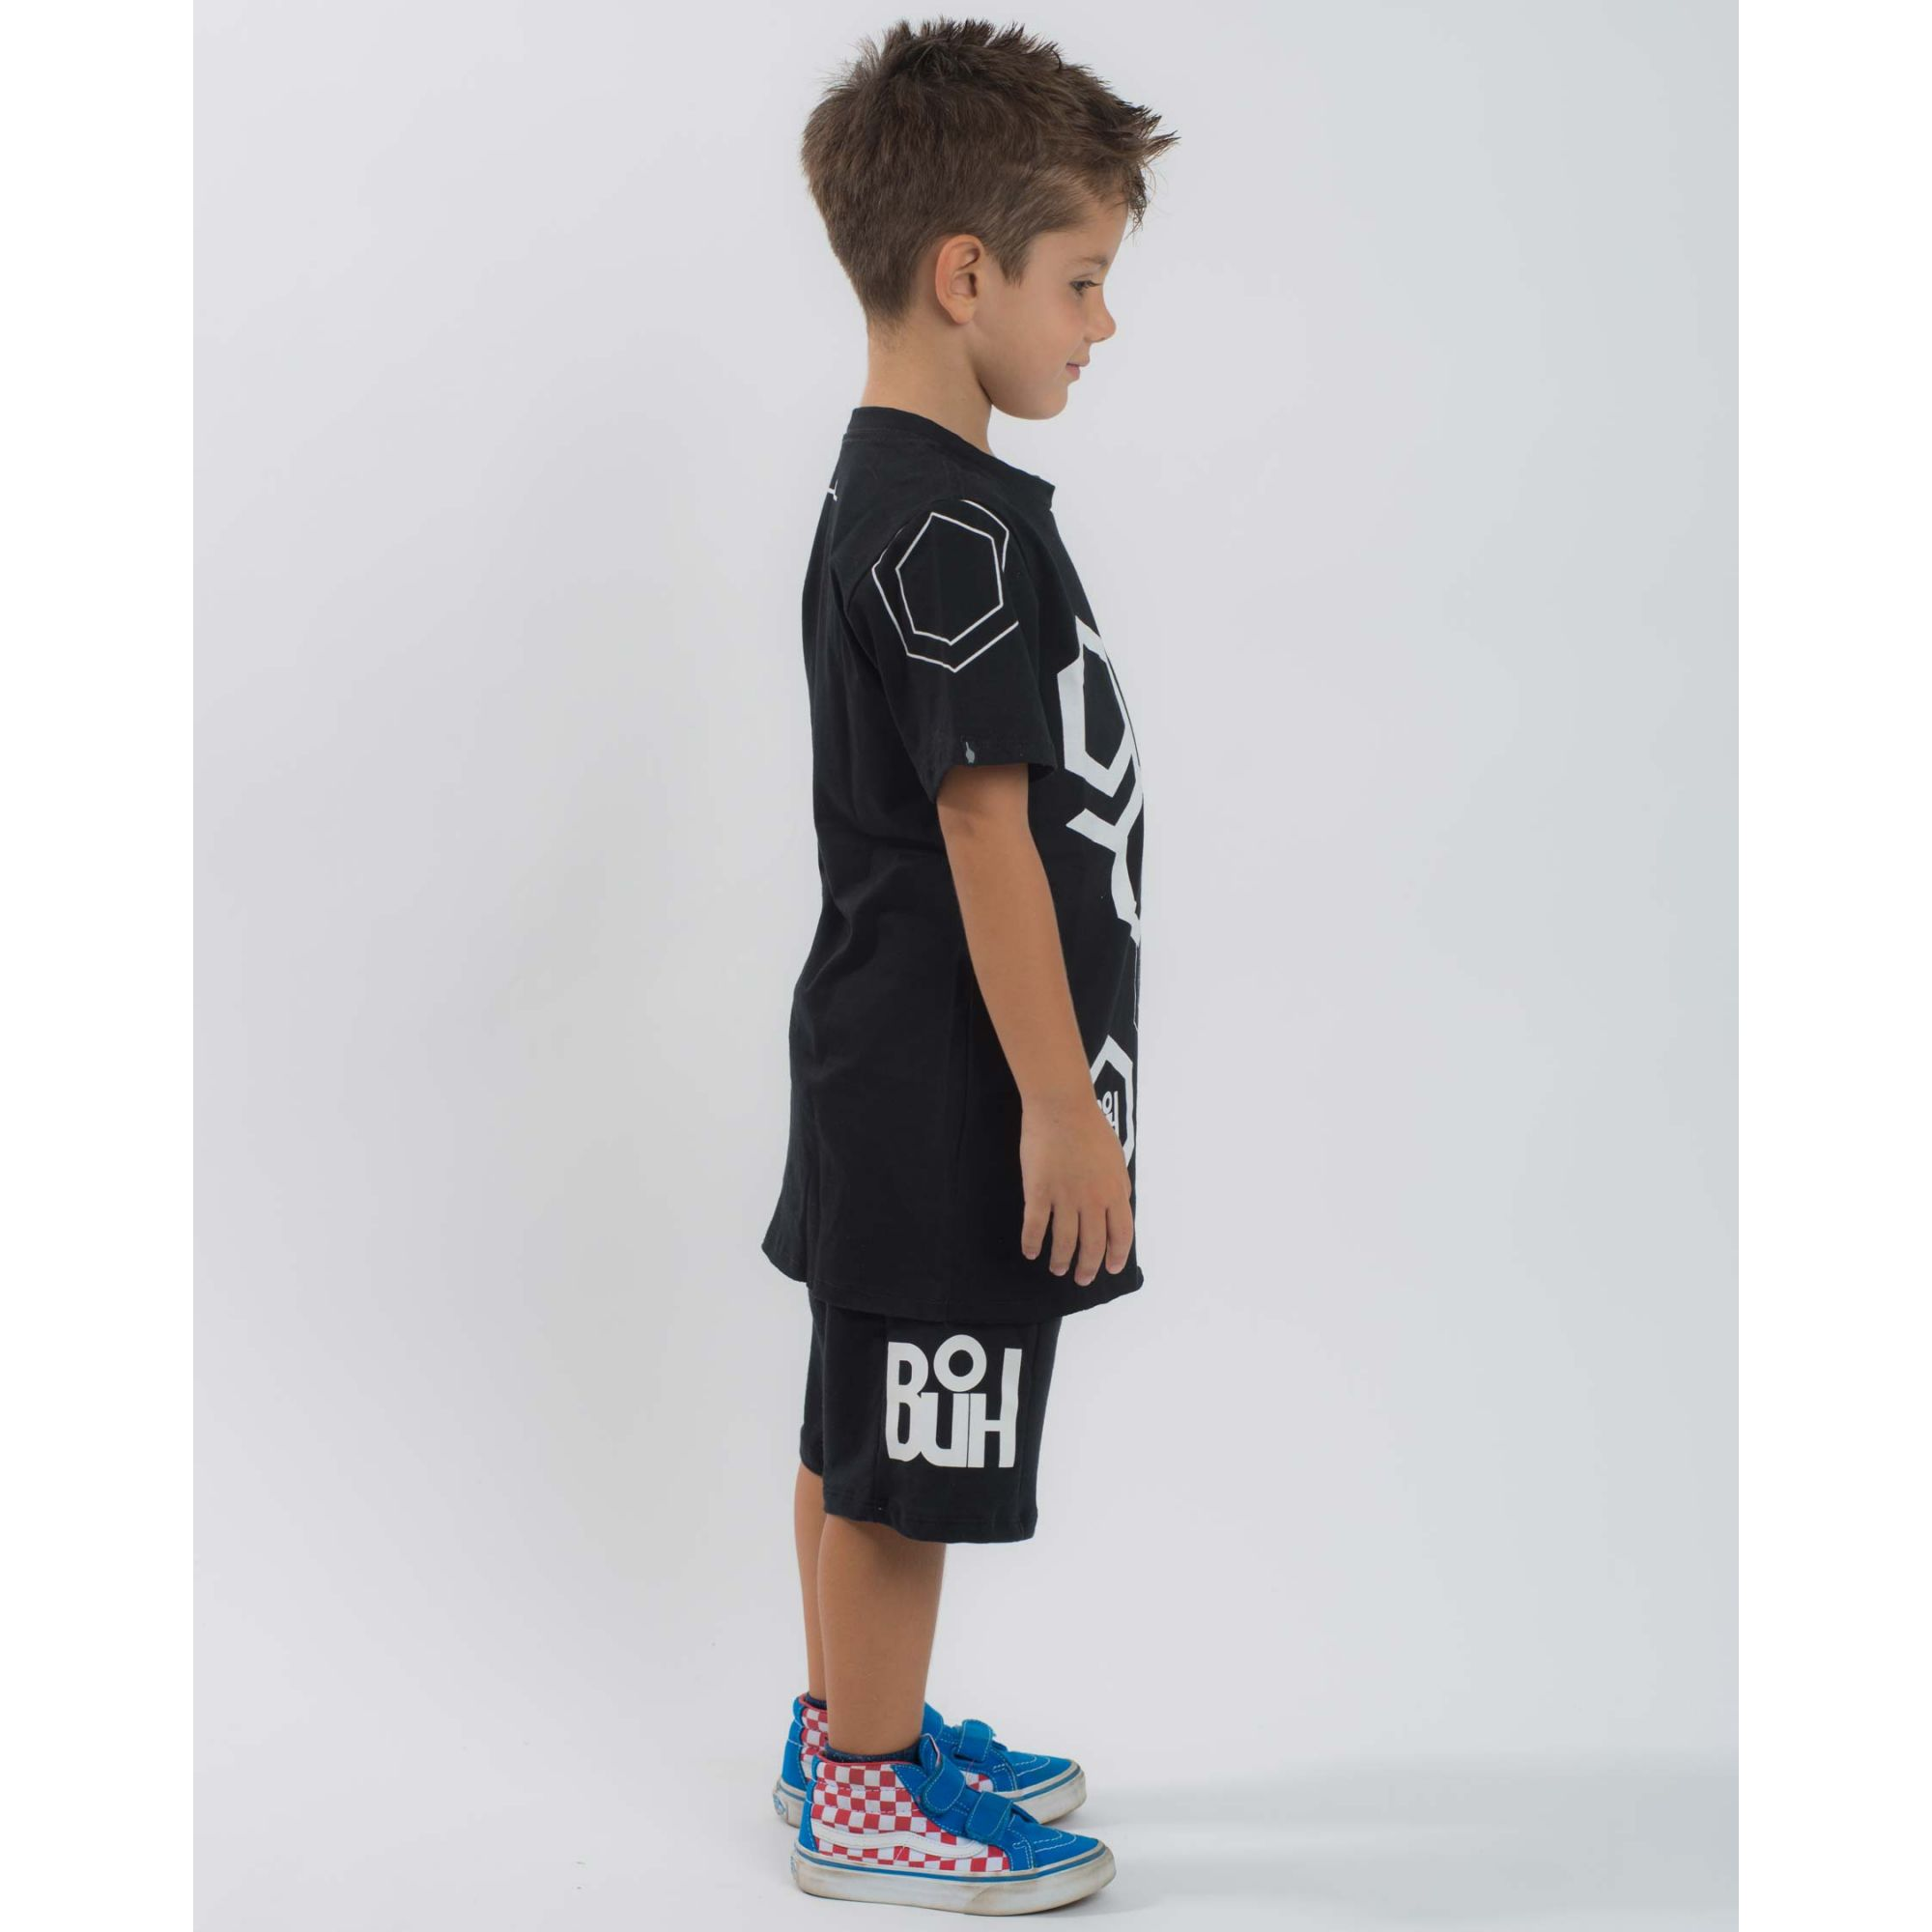 Camiseta Buh Kids God Full Black